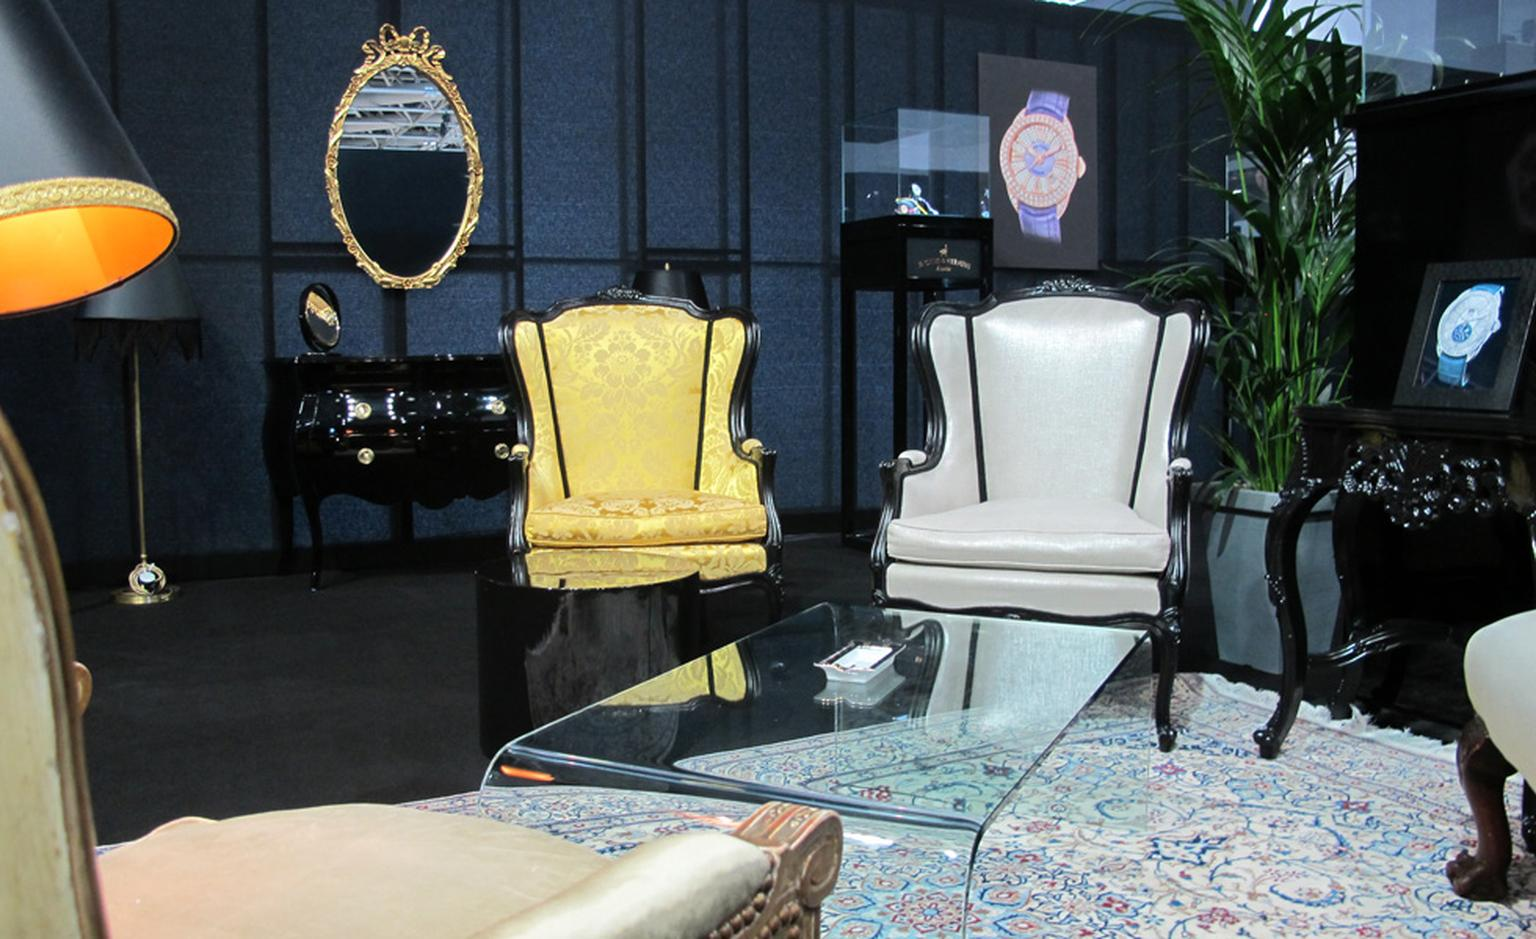 The lavish interiors of Backes & Strauss' salon at the 3rd edition of the 2011 WPHH in Monaco.